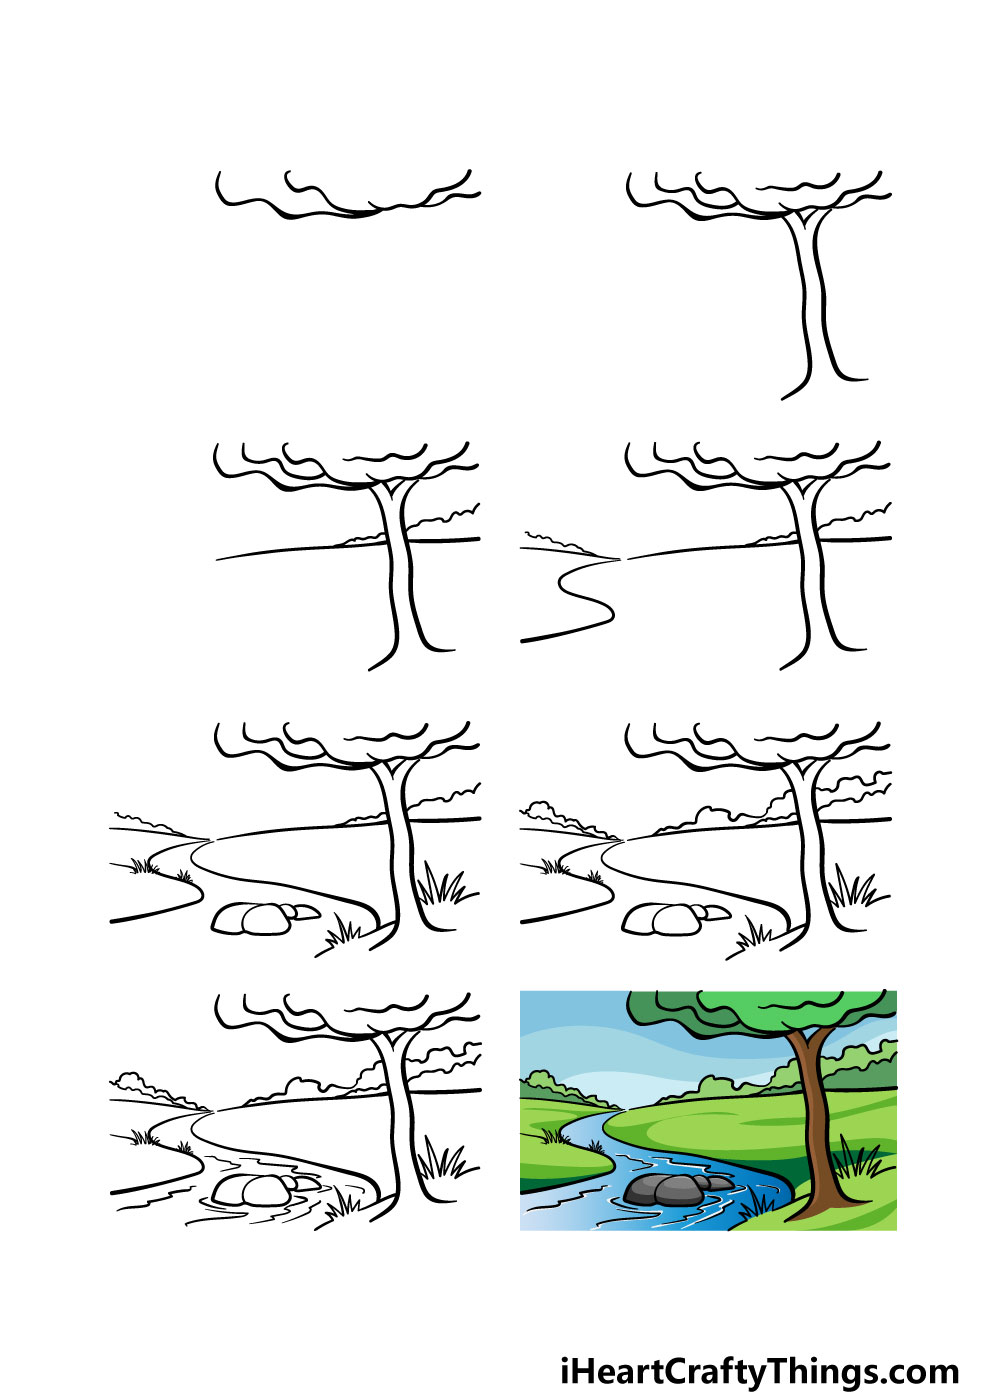 how to draw a river in 8 steps